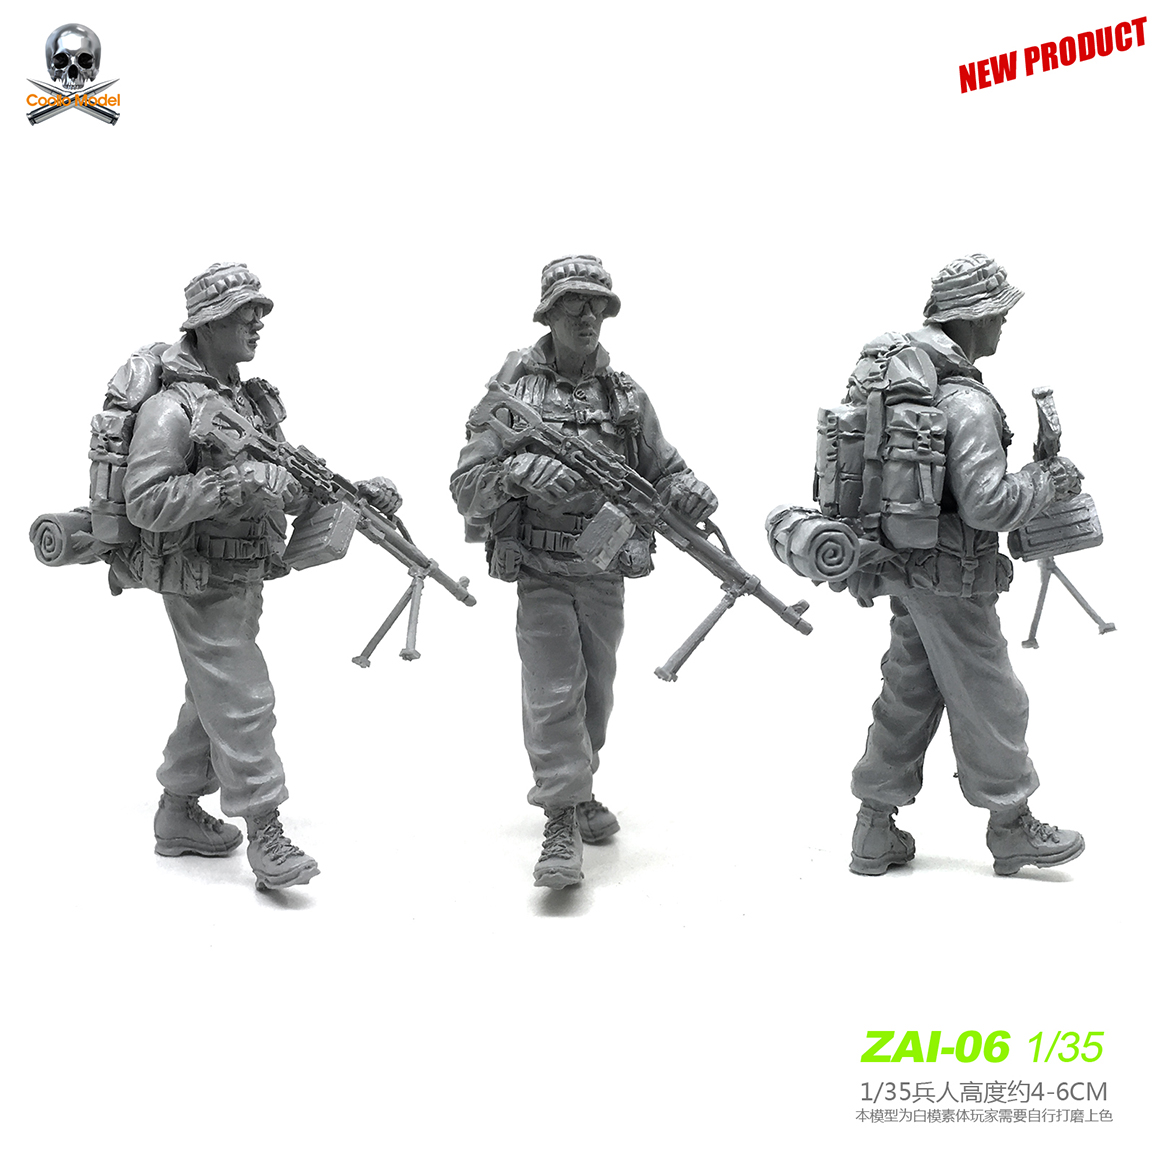 1/35 Resin Soldier  Of Russian Modern Special Forces Model Kits Zai-06